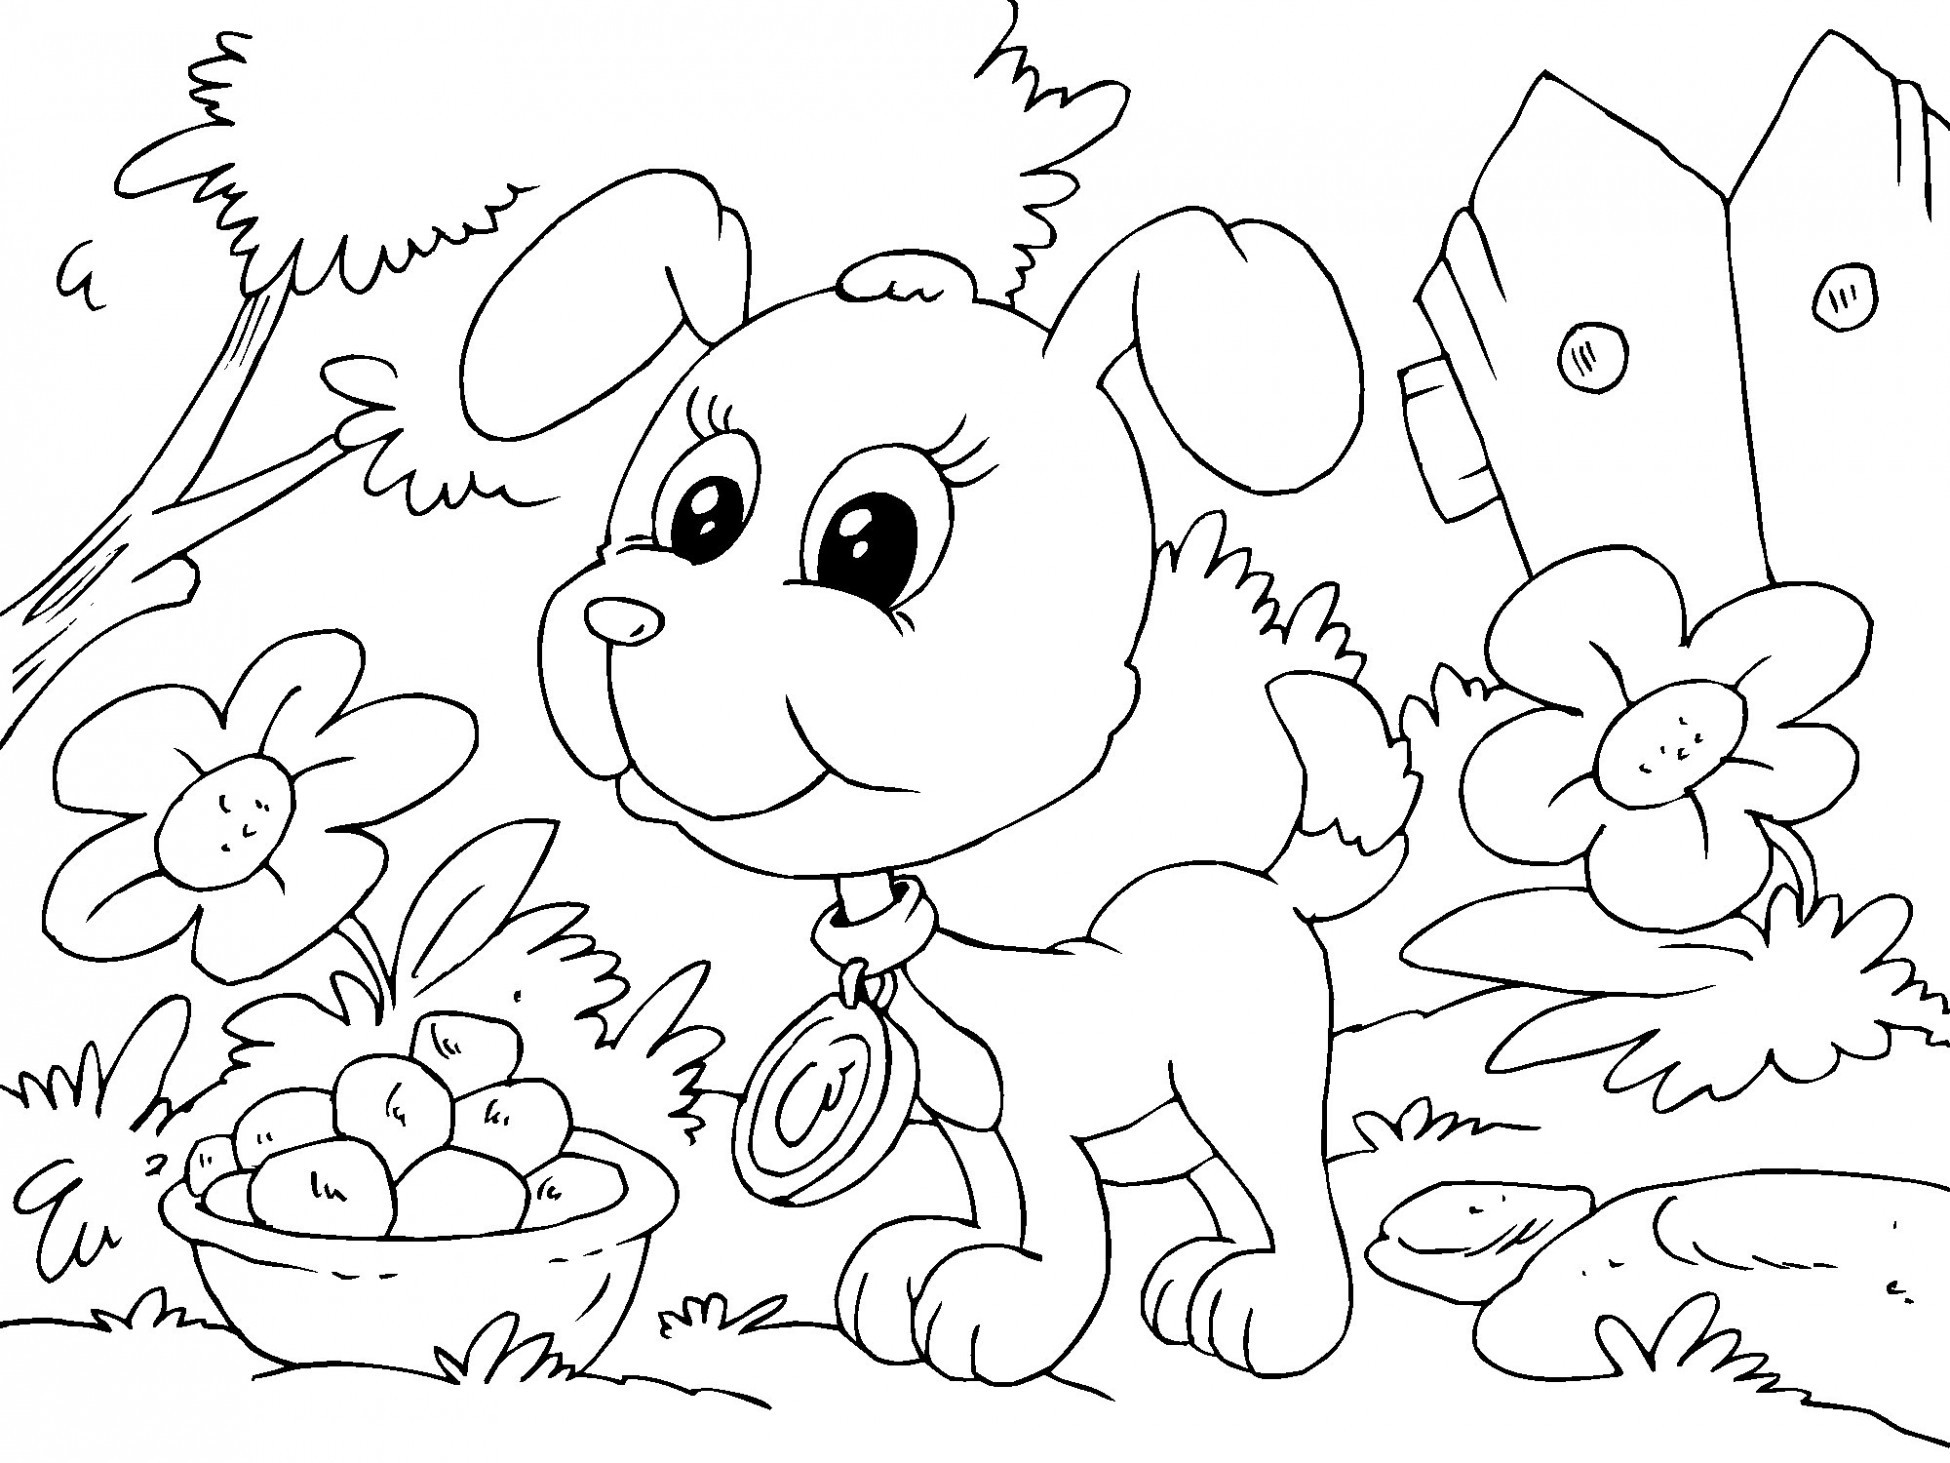 1950x1463 Coloring Pages To Color Online For Kids Inspirational Coloring